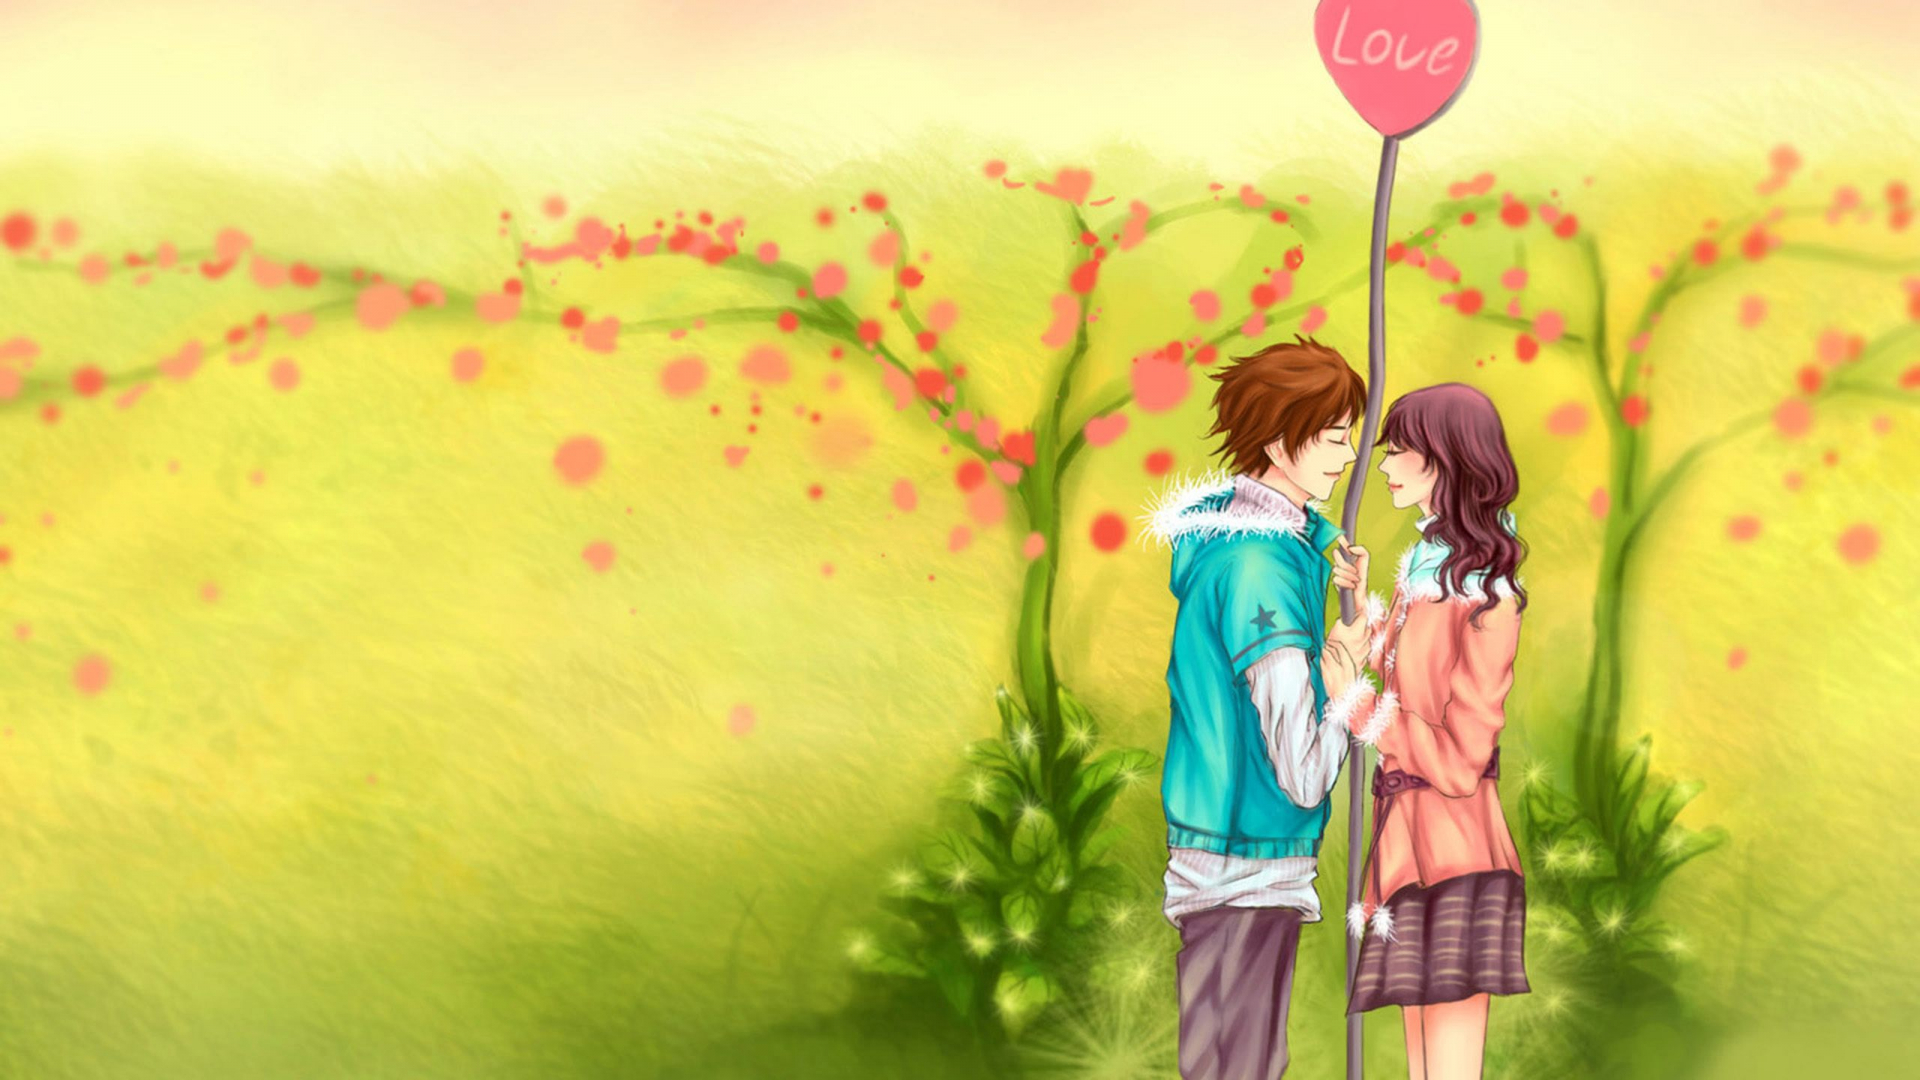 Free Download Cute Lovers Wallpaper Hd Download Of Two Lovers